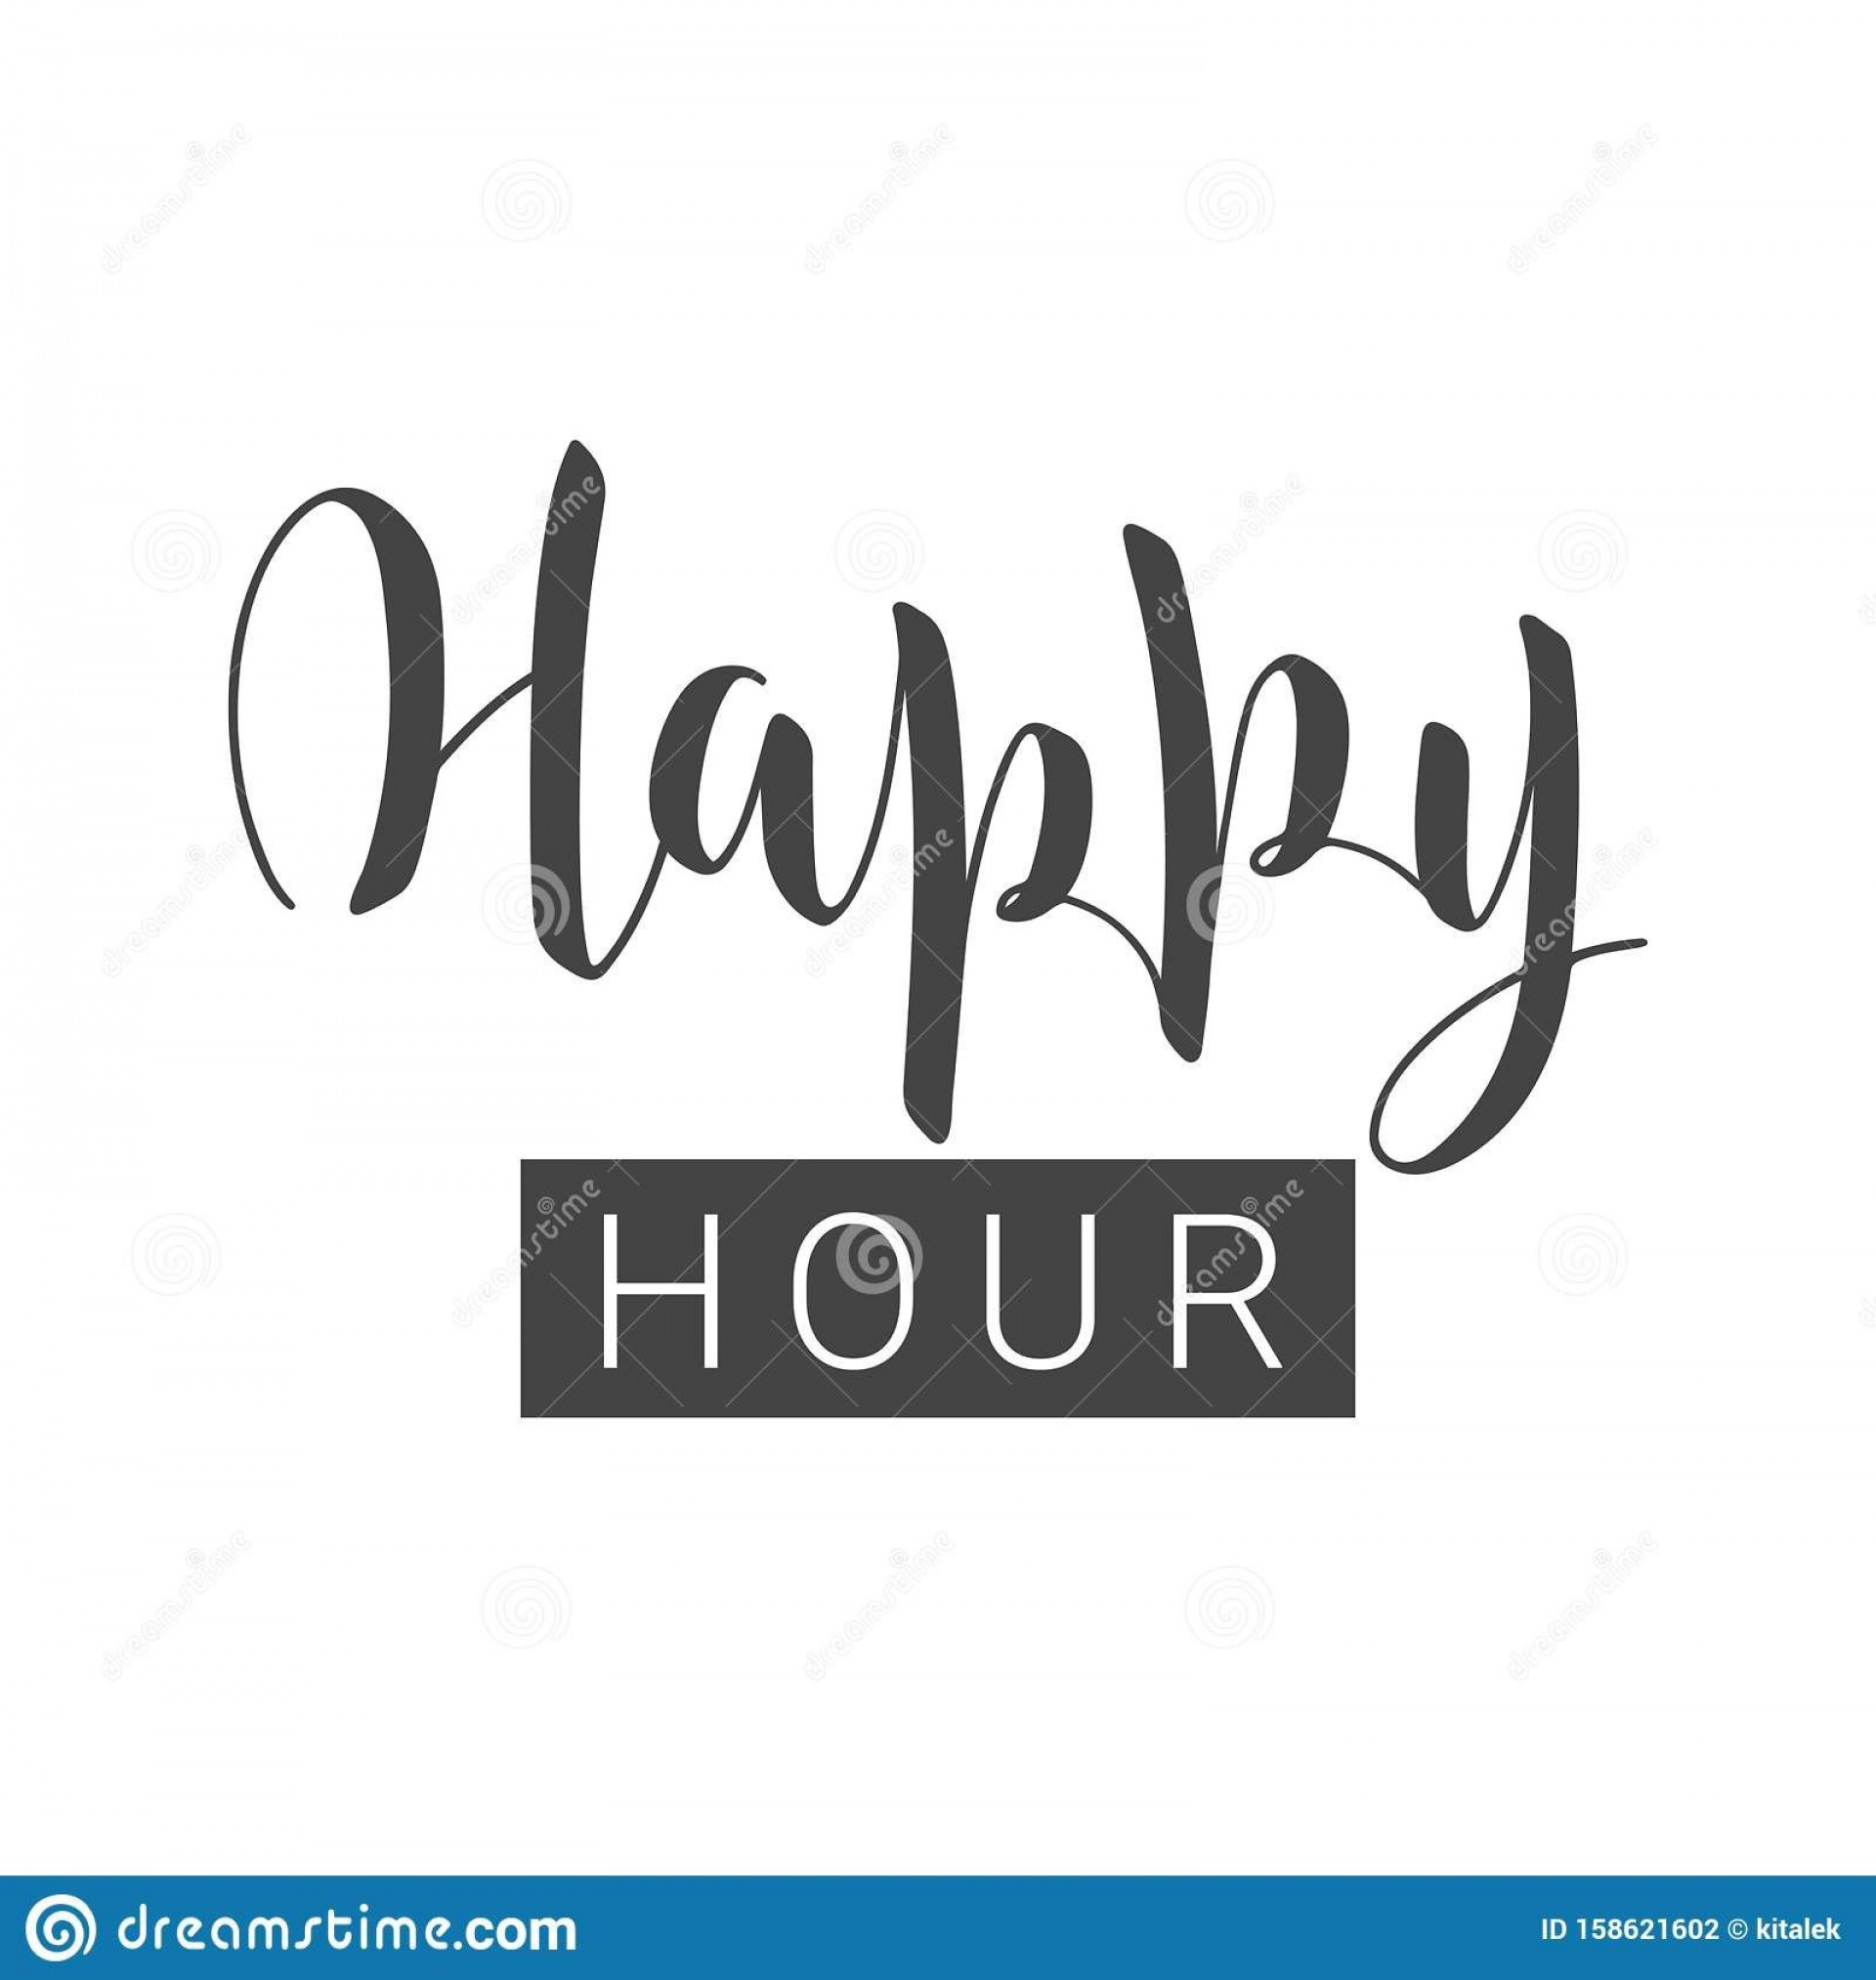 005 Amazing Happy Hour Invitation Template Idea  Templates Free Word Farewell1920